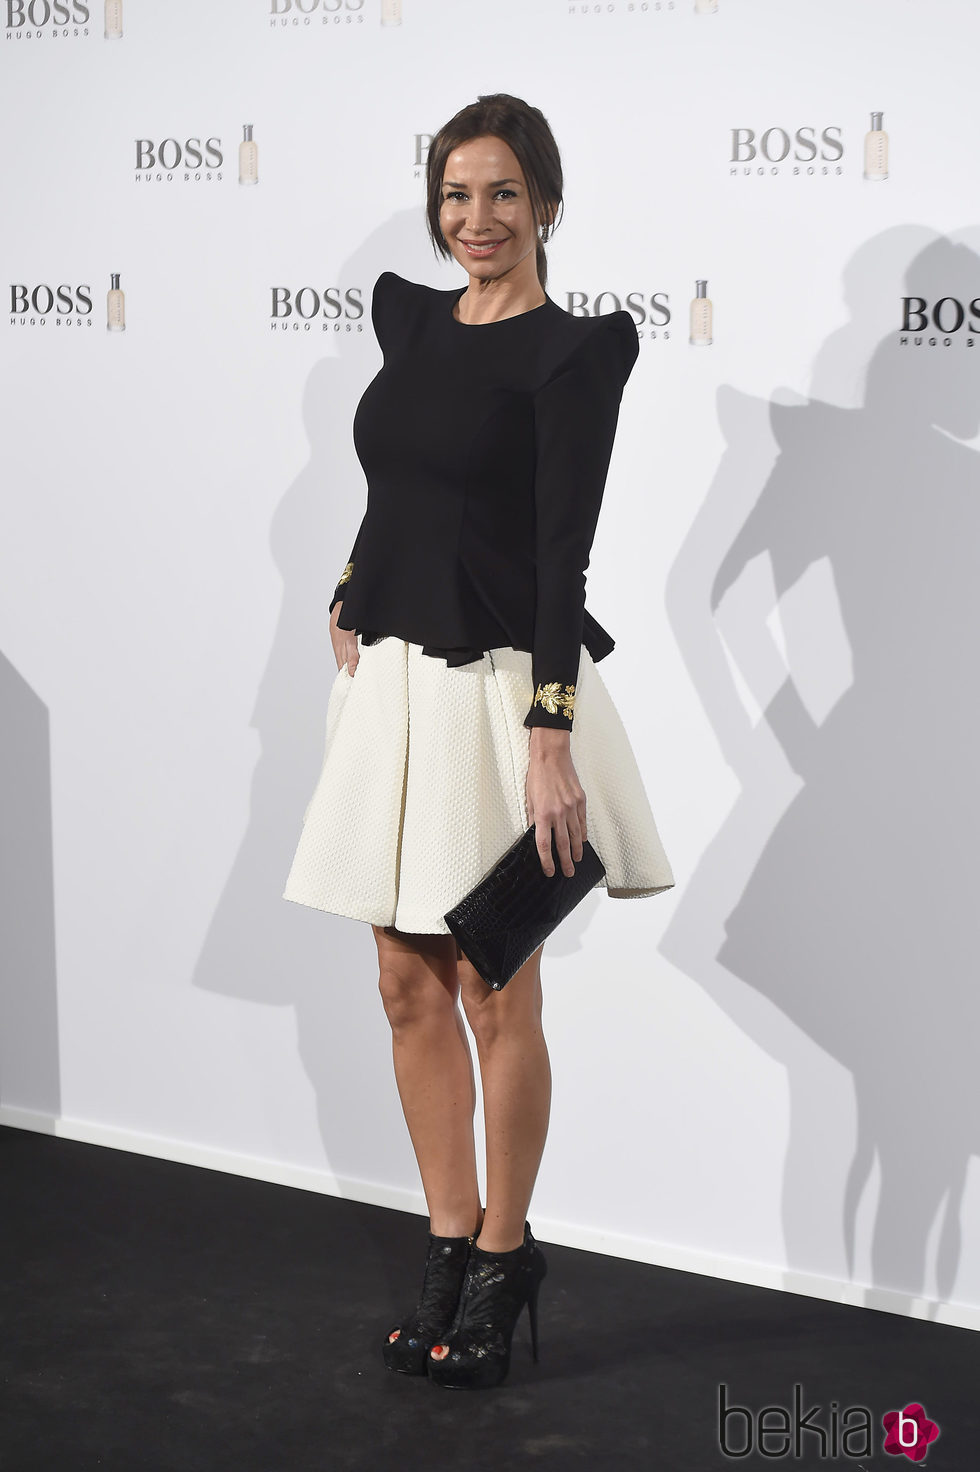 Cecilia Gómez en la fiesta de 'Boss Bottled' de Hugo Boss en Madrid